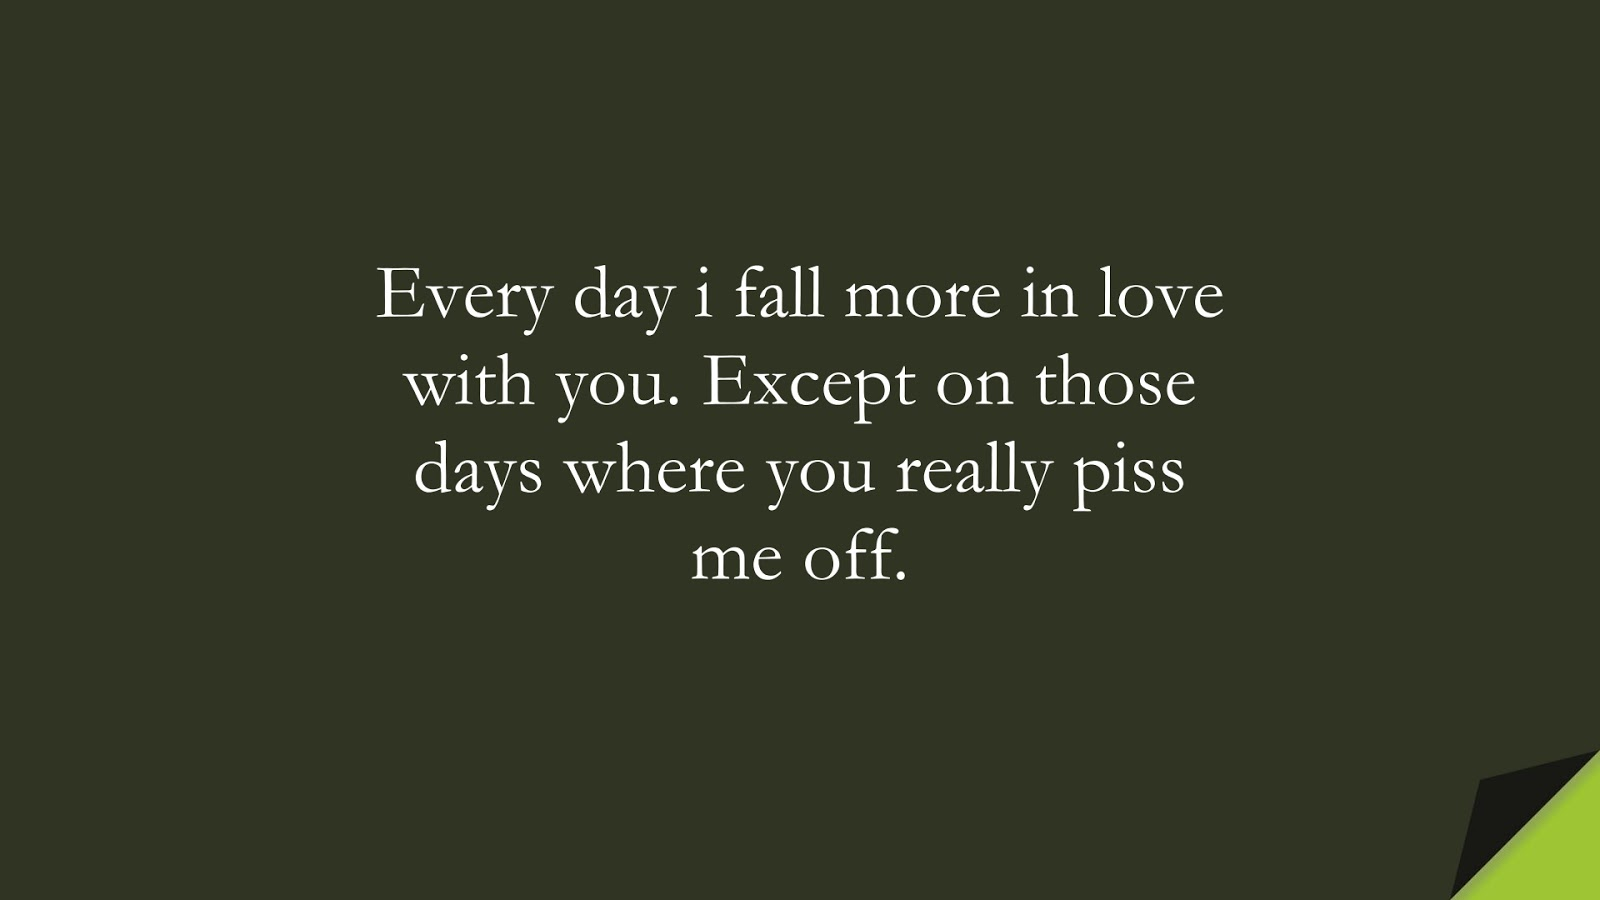 Every day i fall more in love with you. Except on those days where you really piss me off.FALSE